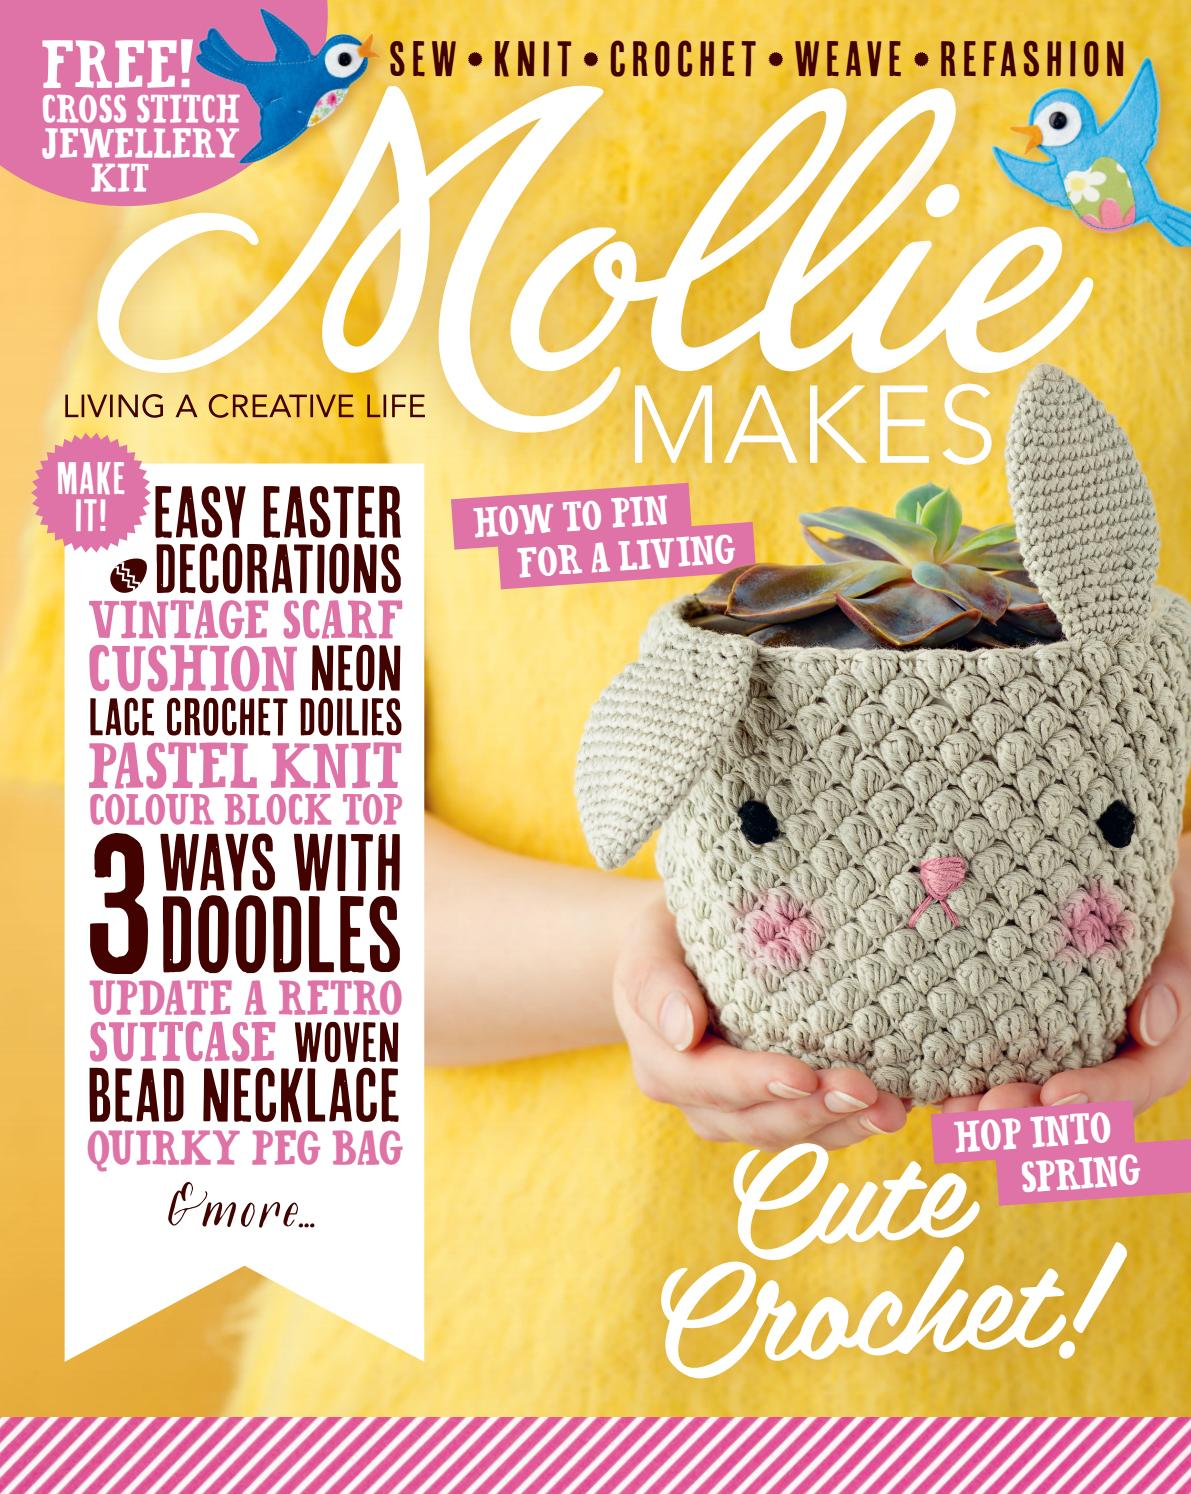 77824ee55 Mollie Makes #51 by Mollie Makes - issuu